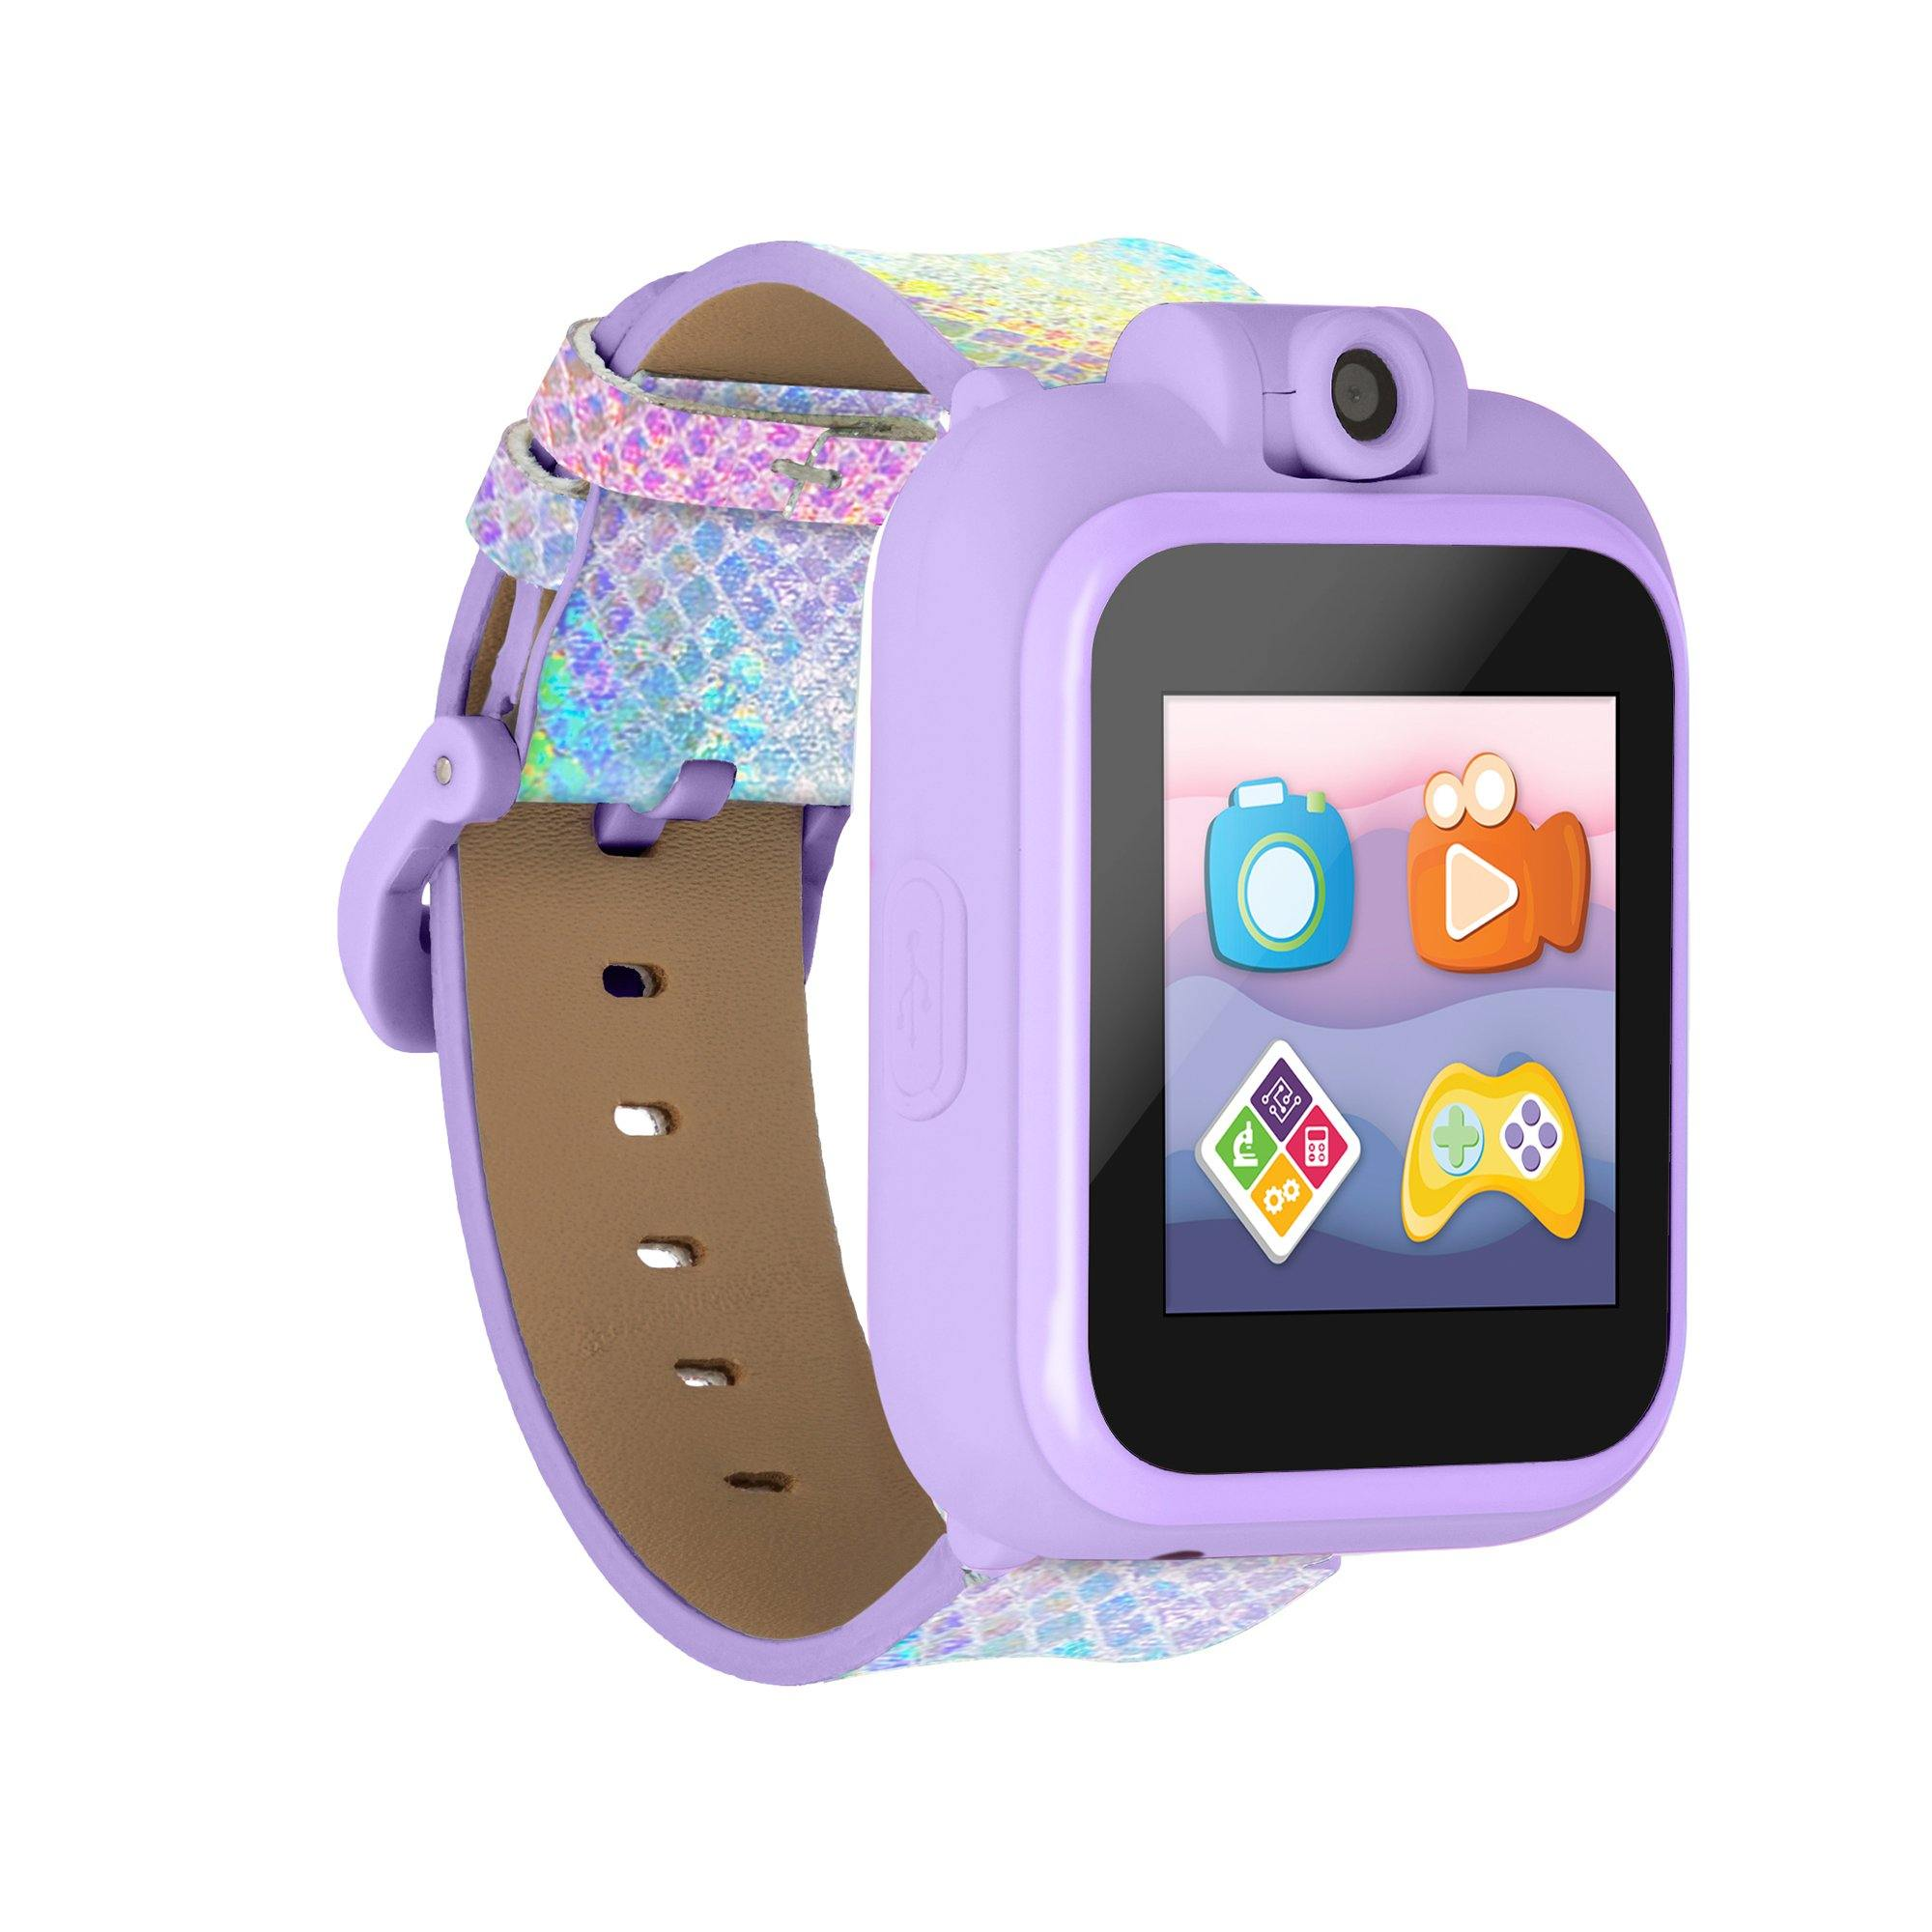 PlayZoom 2 Kids Smartwatch: Textured Holographic